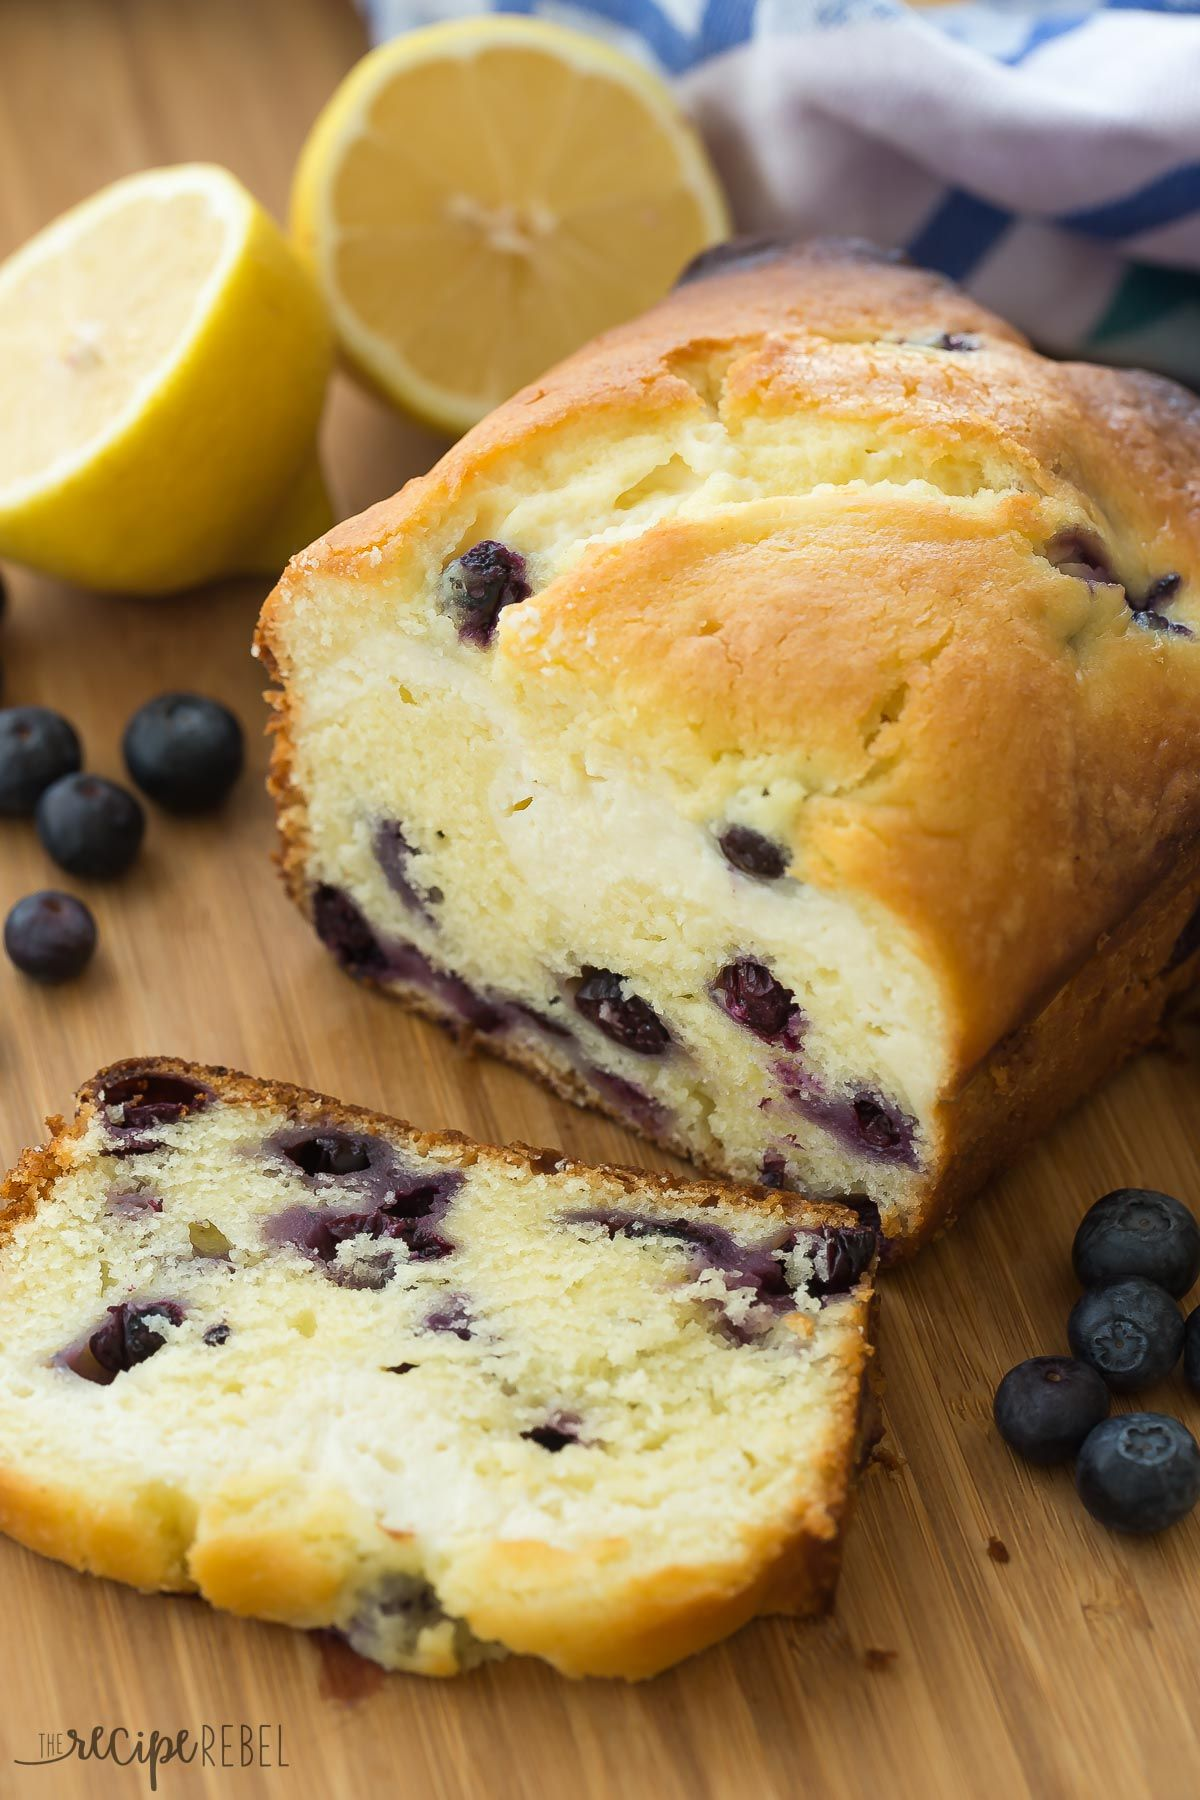 This Cream Cheese Filled Blueberry Lemon Bread Is Sweet Tangy And Filled With A Decadent Cheesecake Laye Lemon Recipes Lemon Blueberry Bread Blueberry Recipes